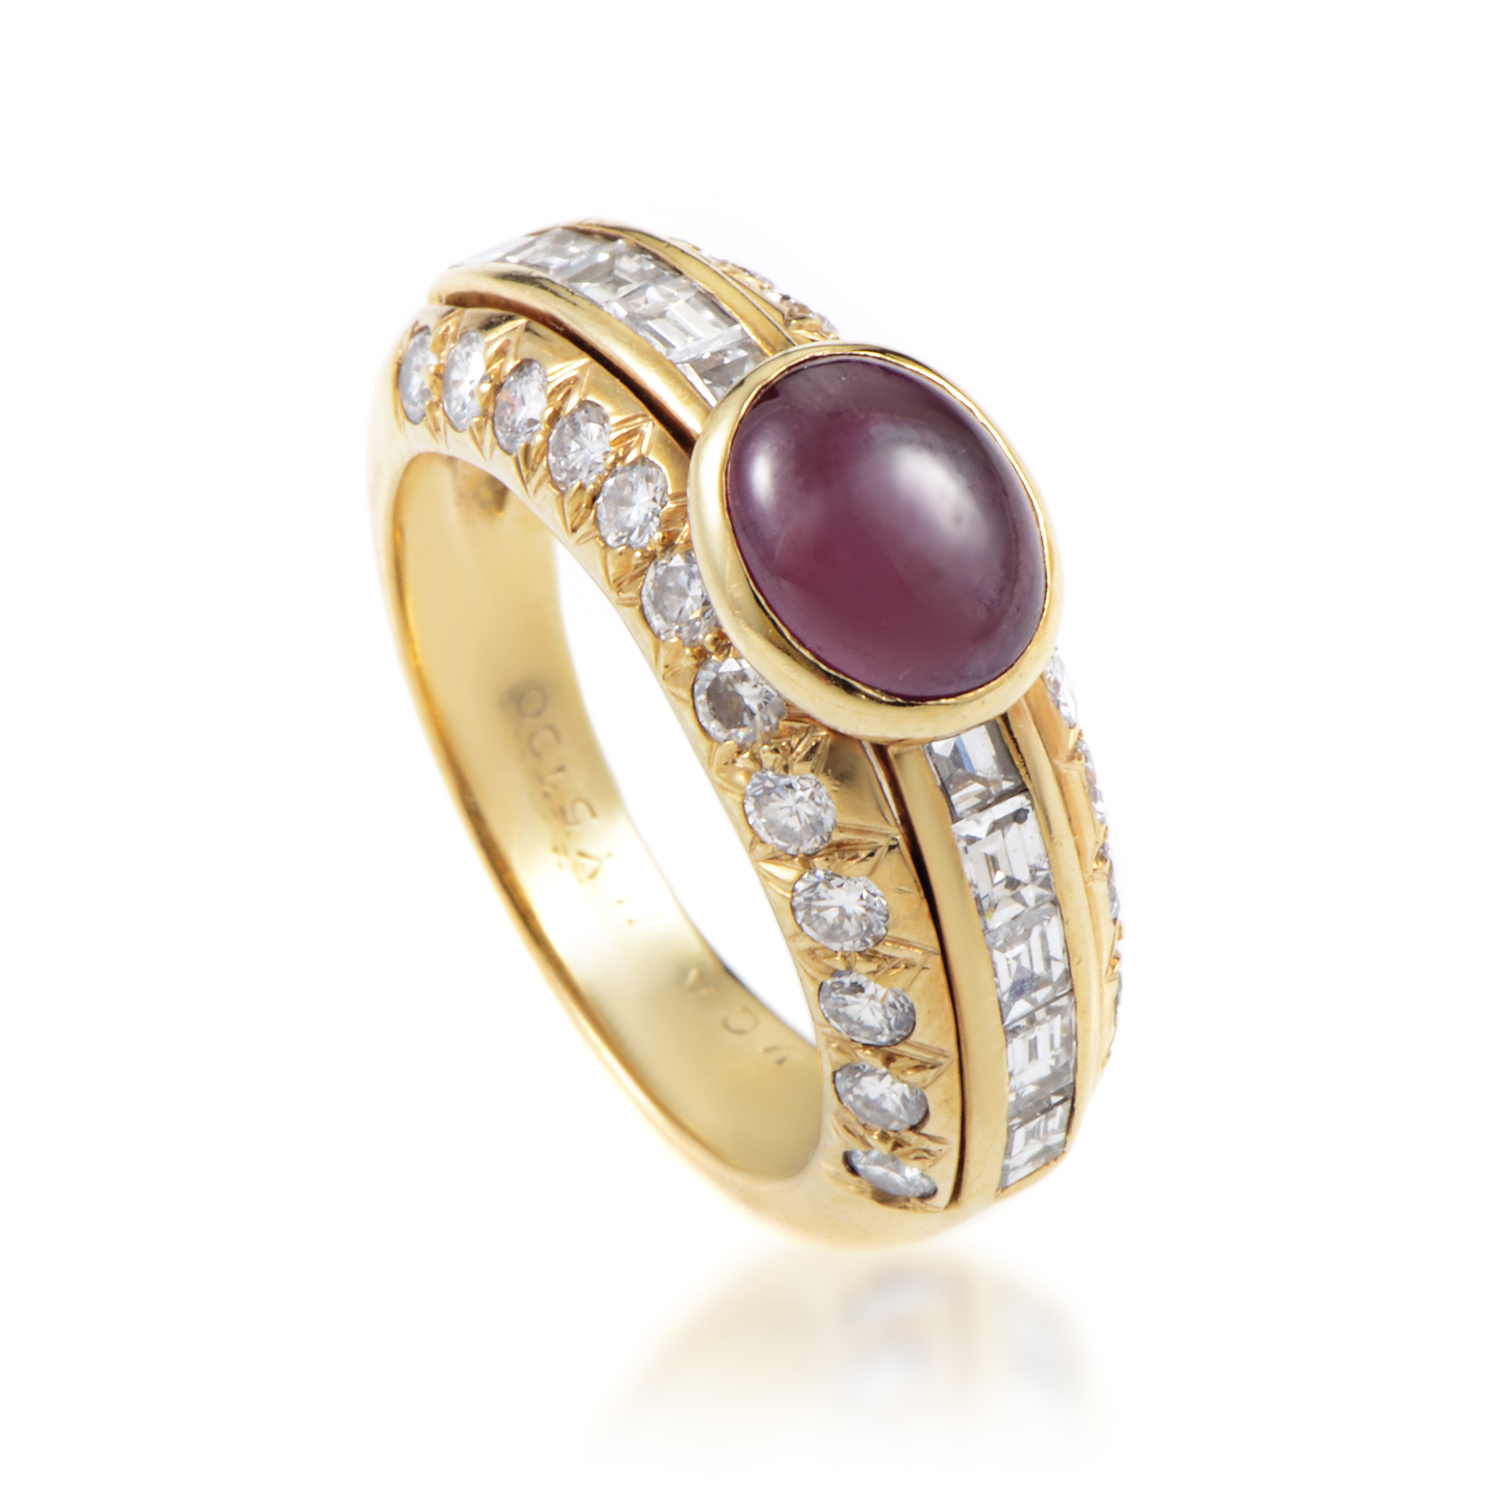 Van Cleef & Arpels Women's 18K Yellow Gold Diamond & Ruby Cabochon Ring